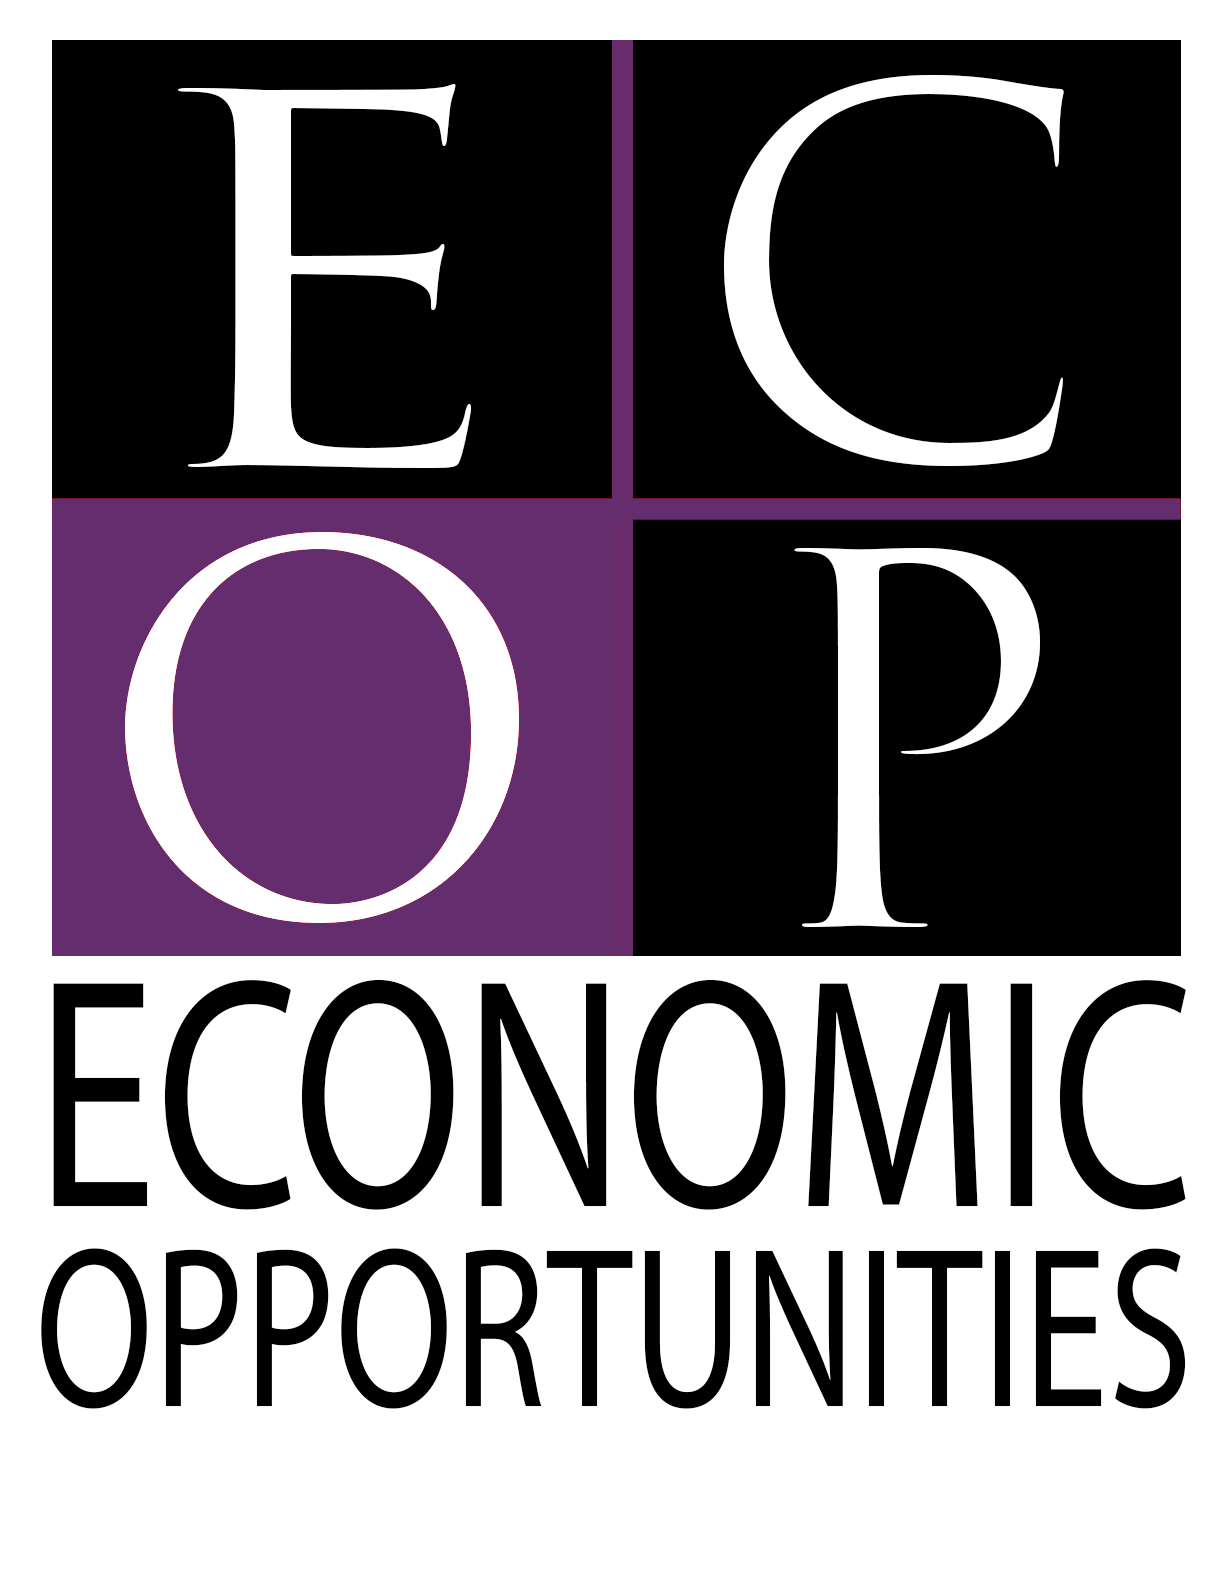 Economic Opportunities (EcOp)